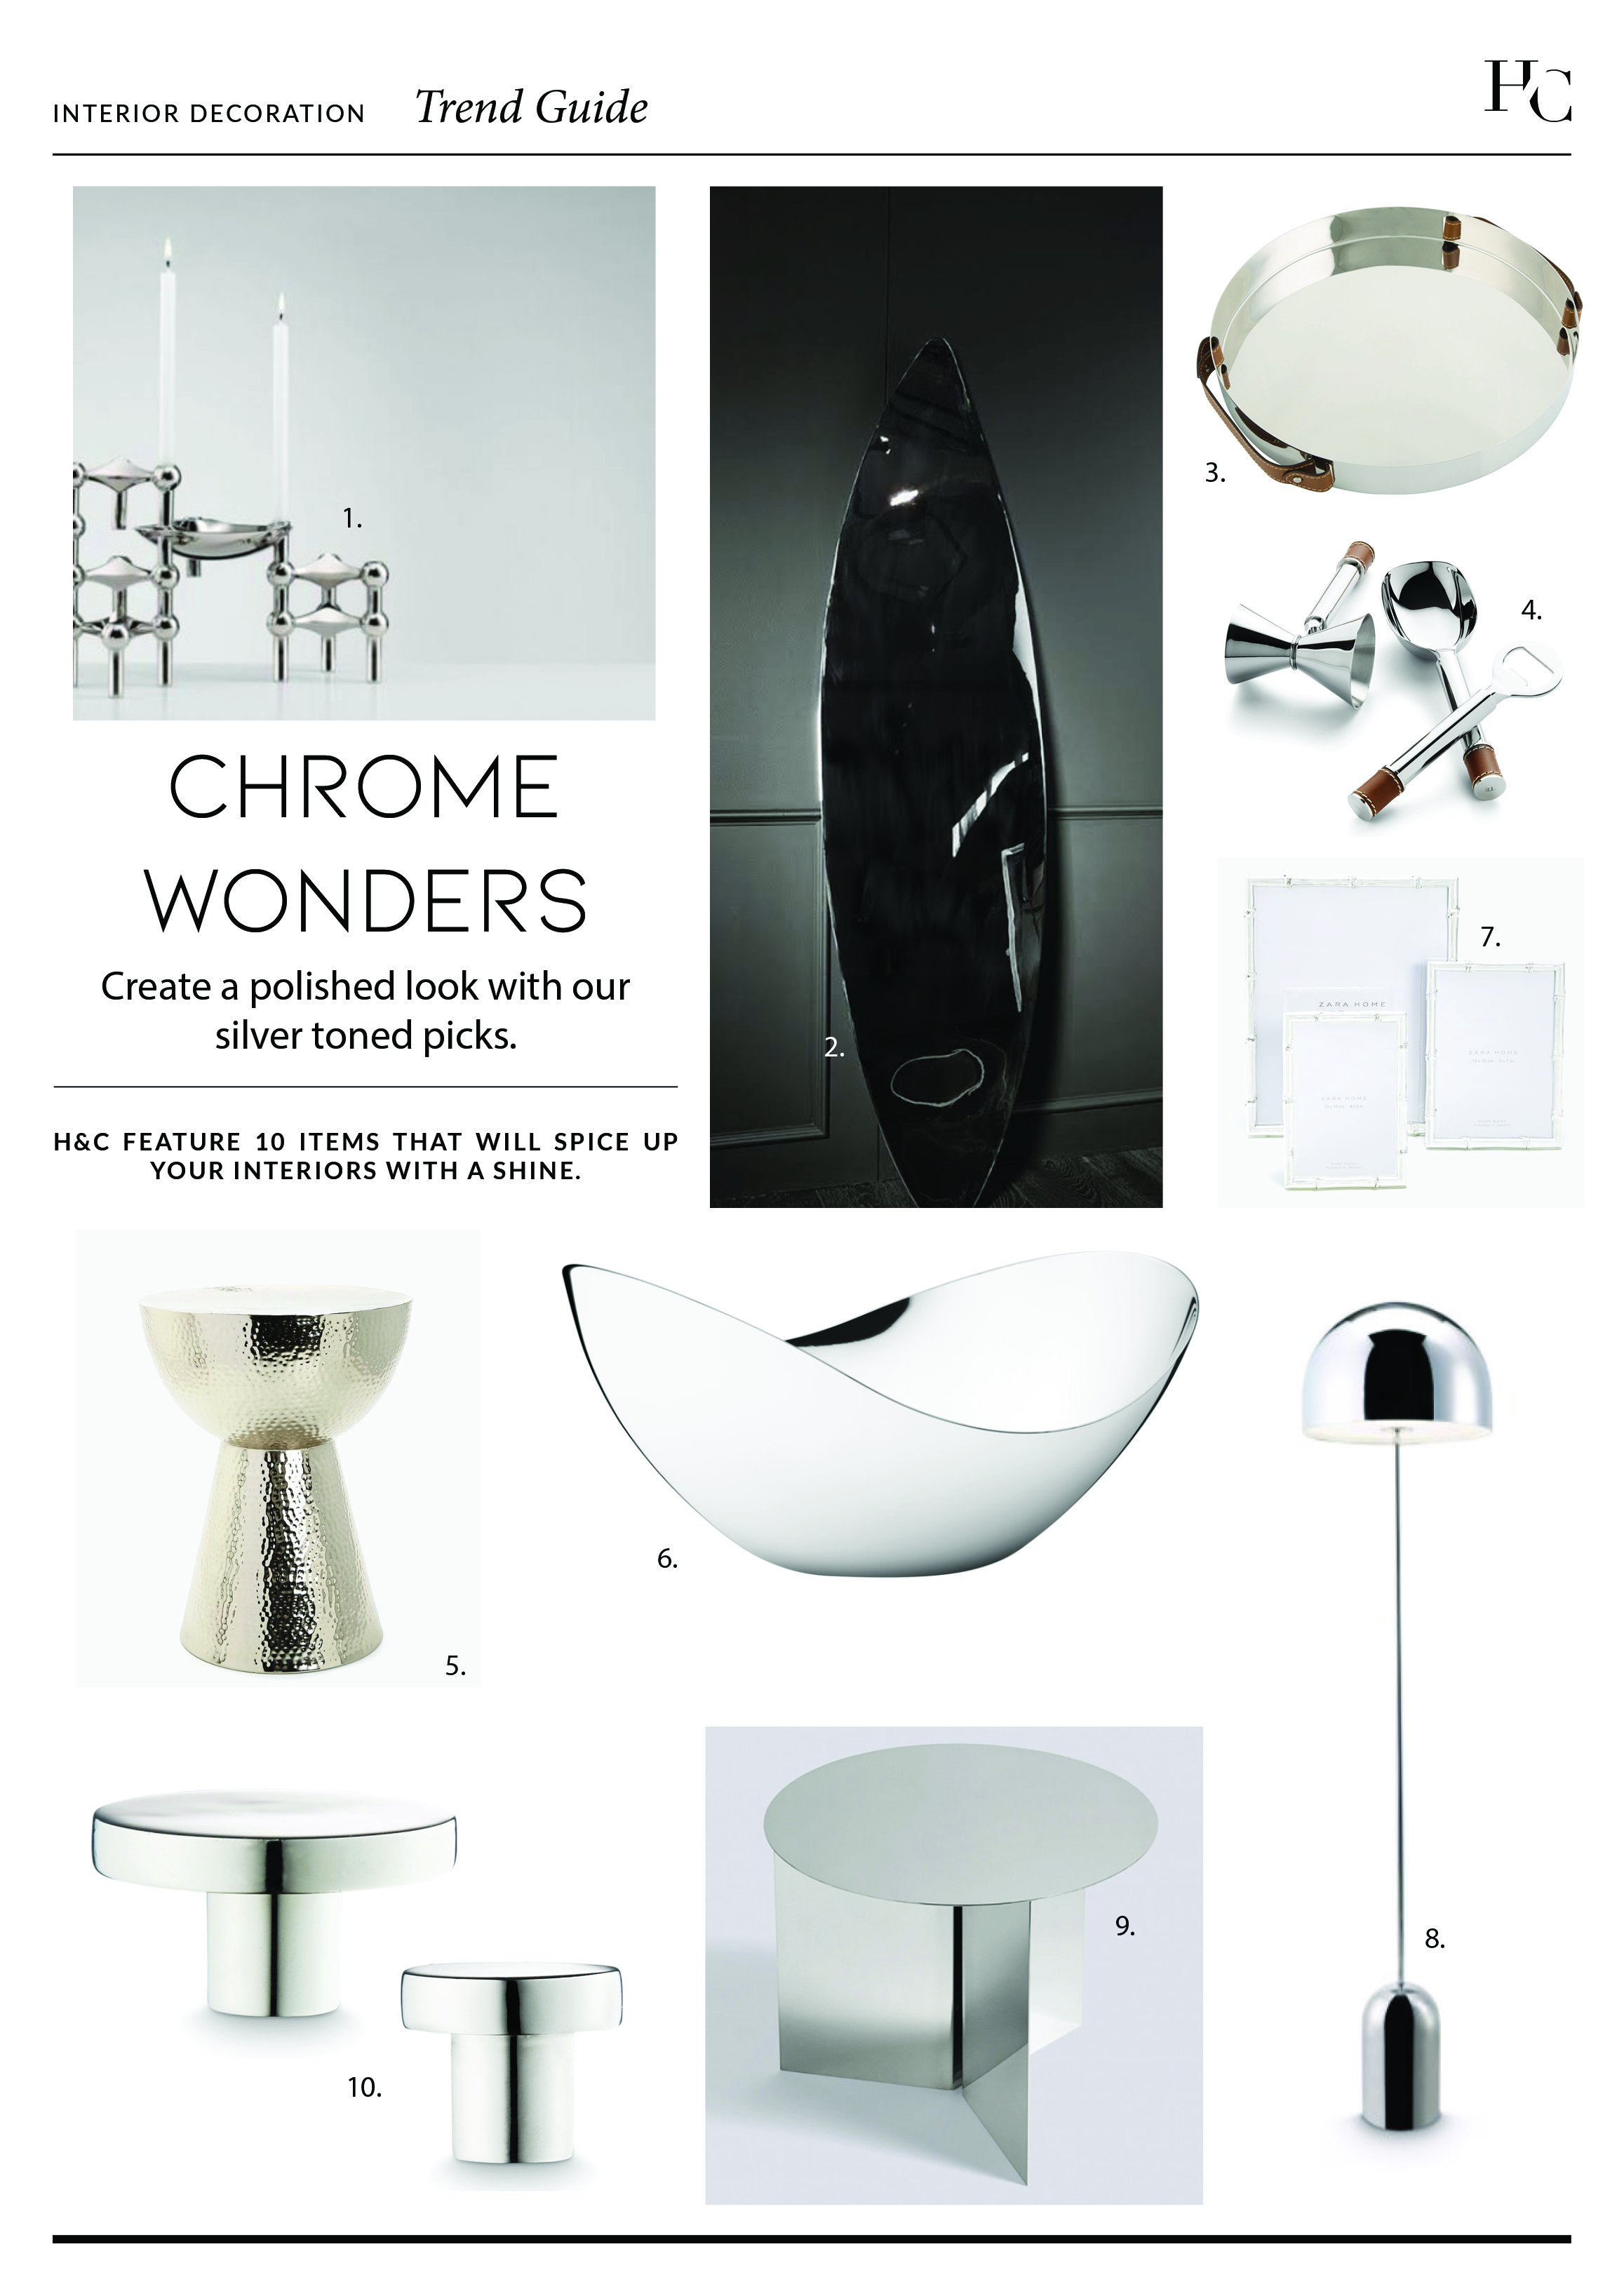 181125 TREND GUIDE_CHROME WONDERS.jpg